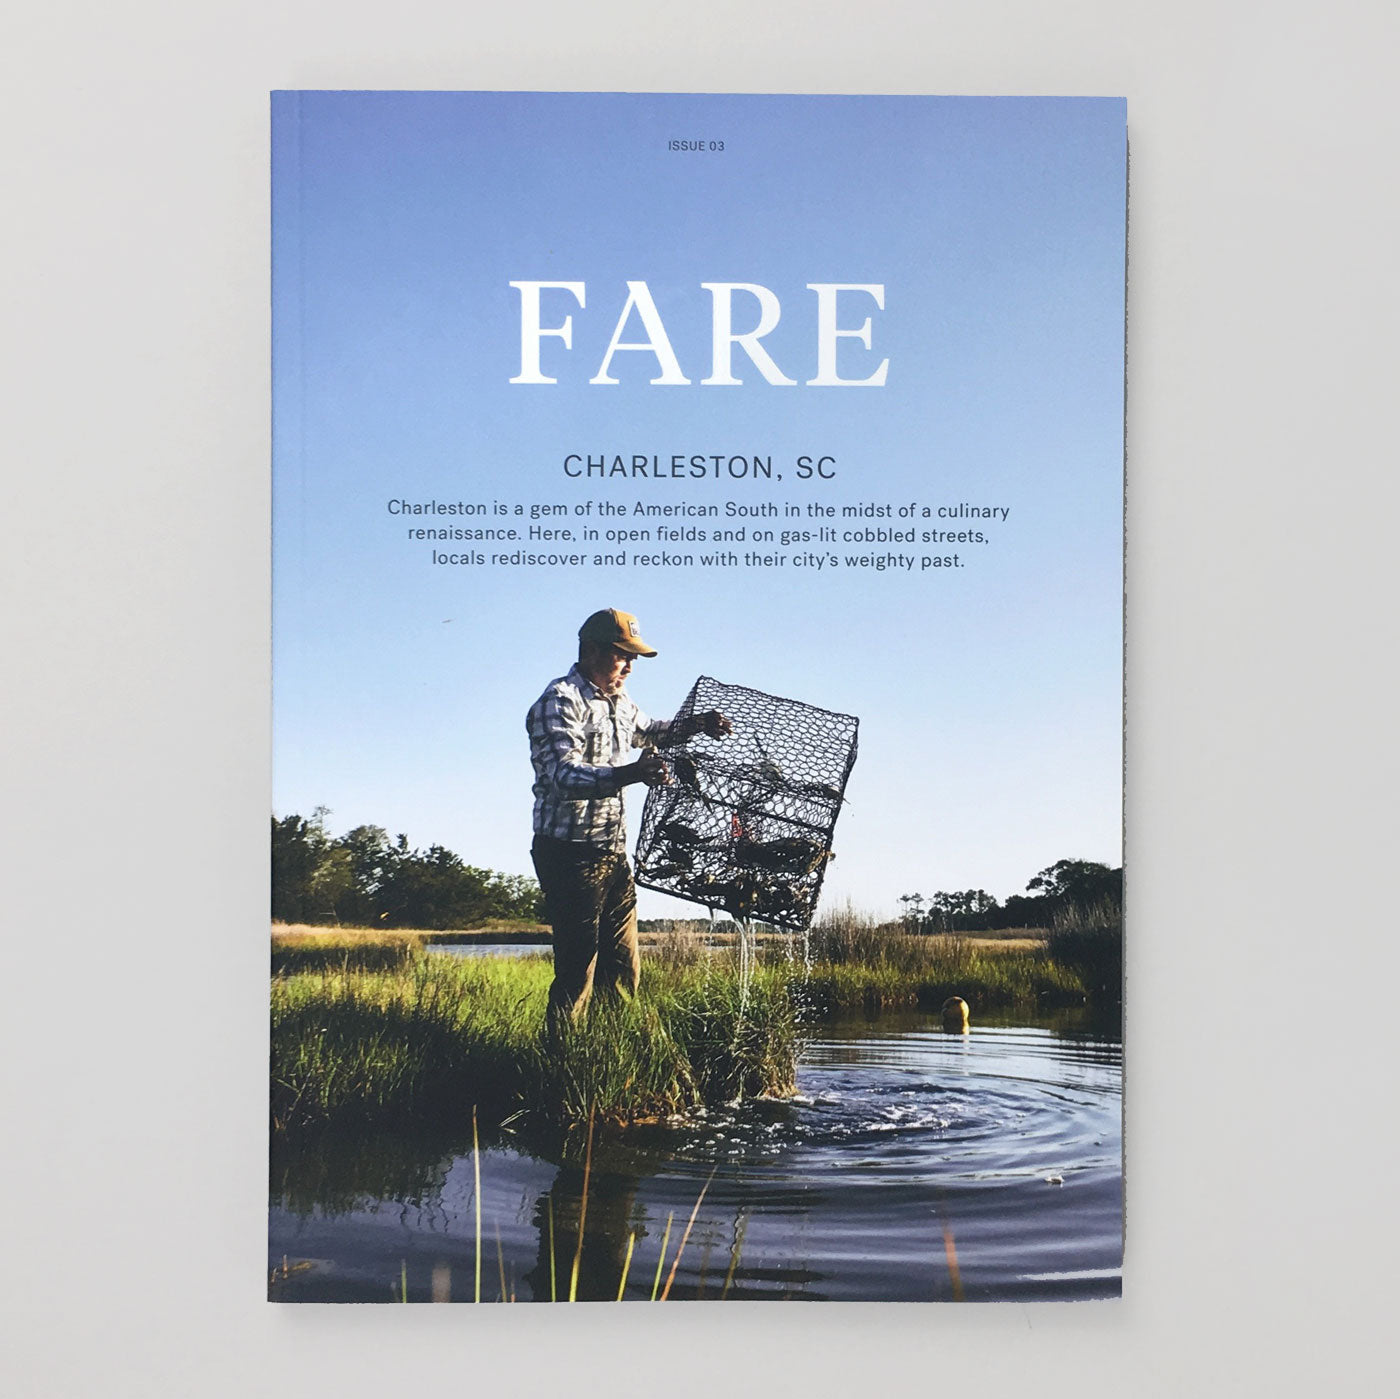 Fare Magazine #3 - Charleston